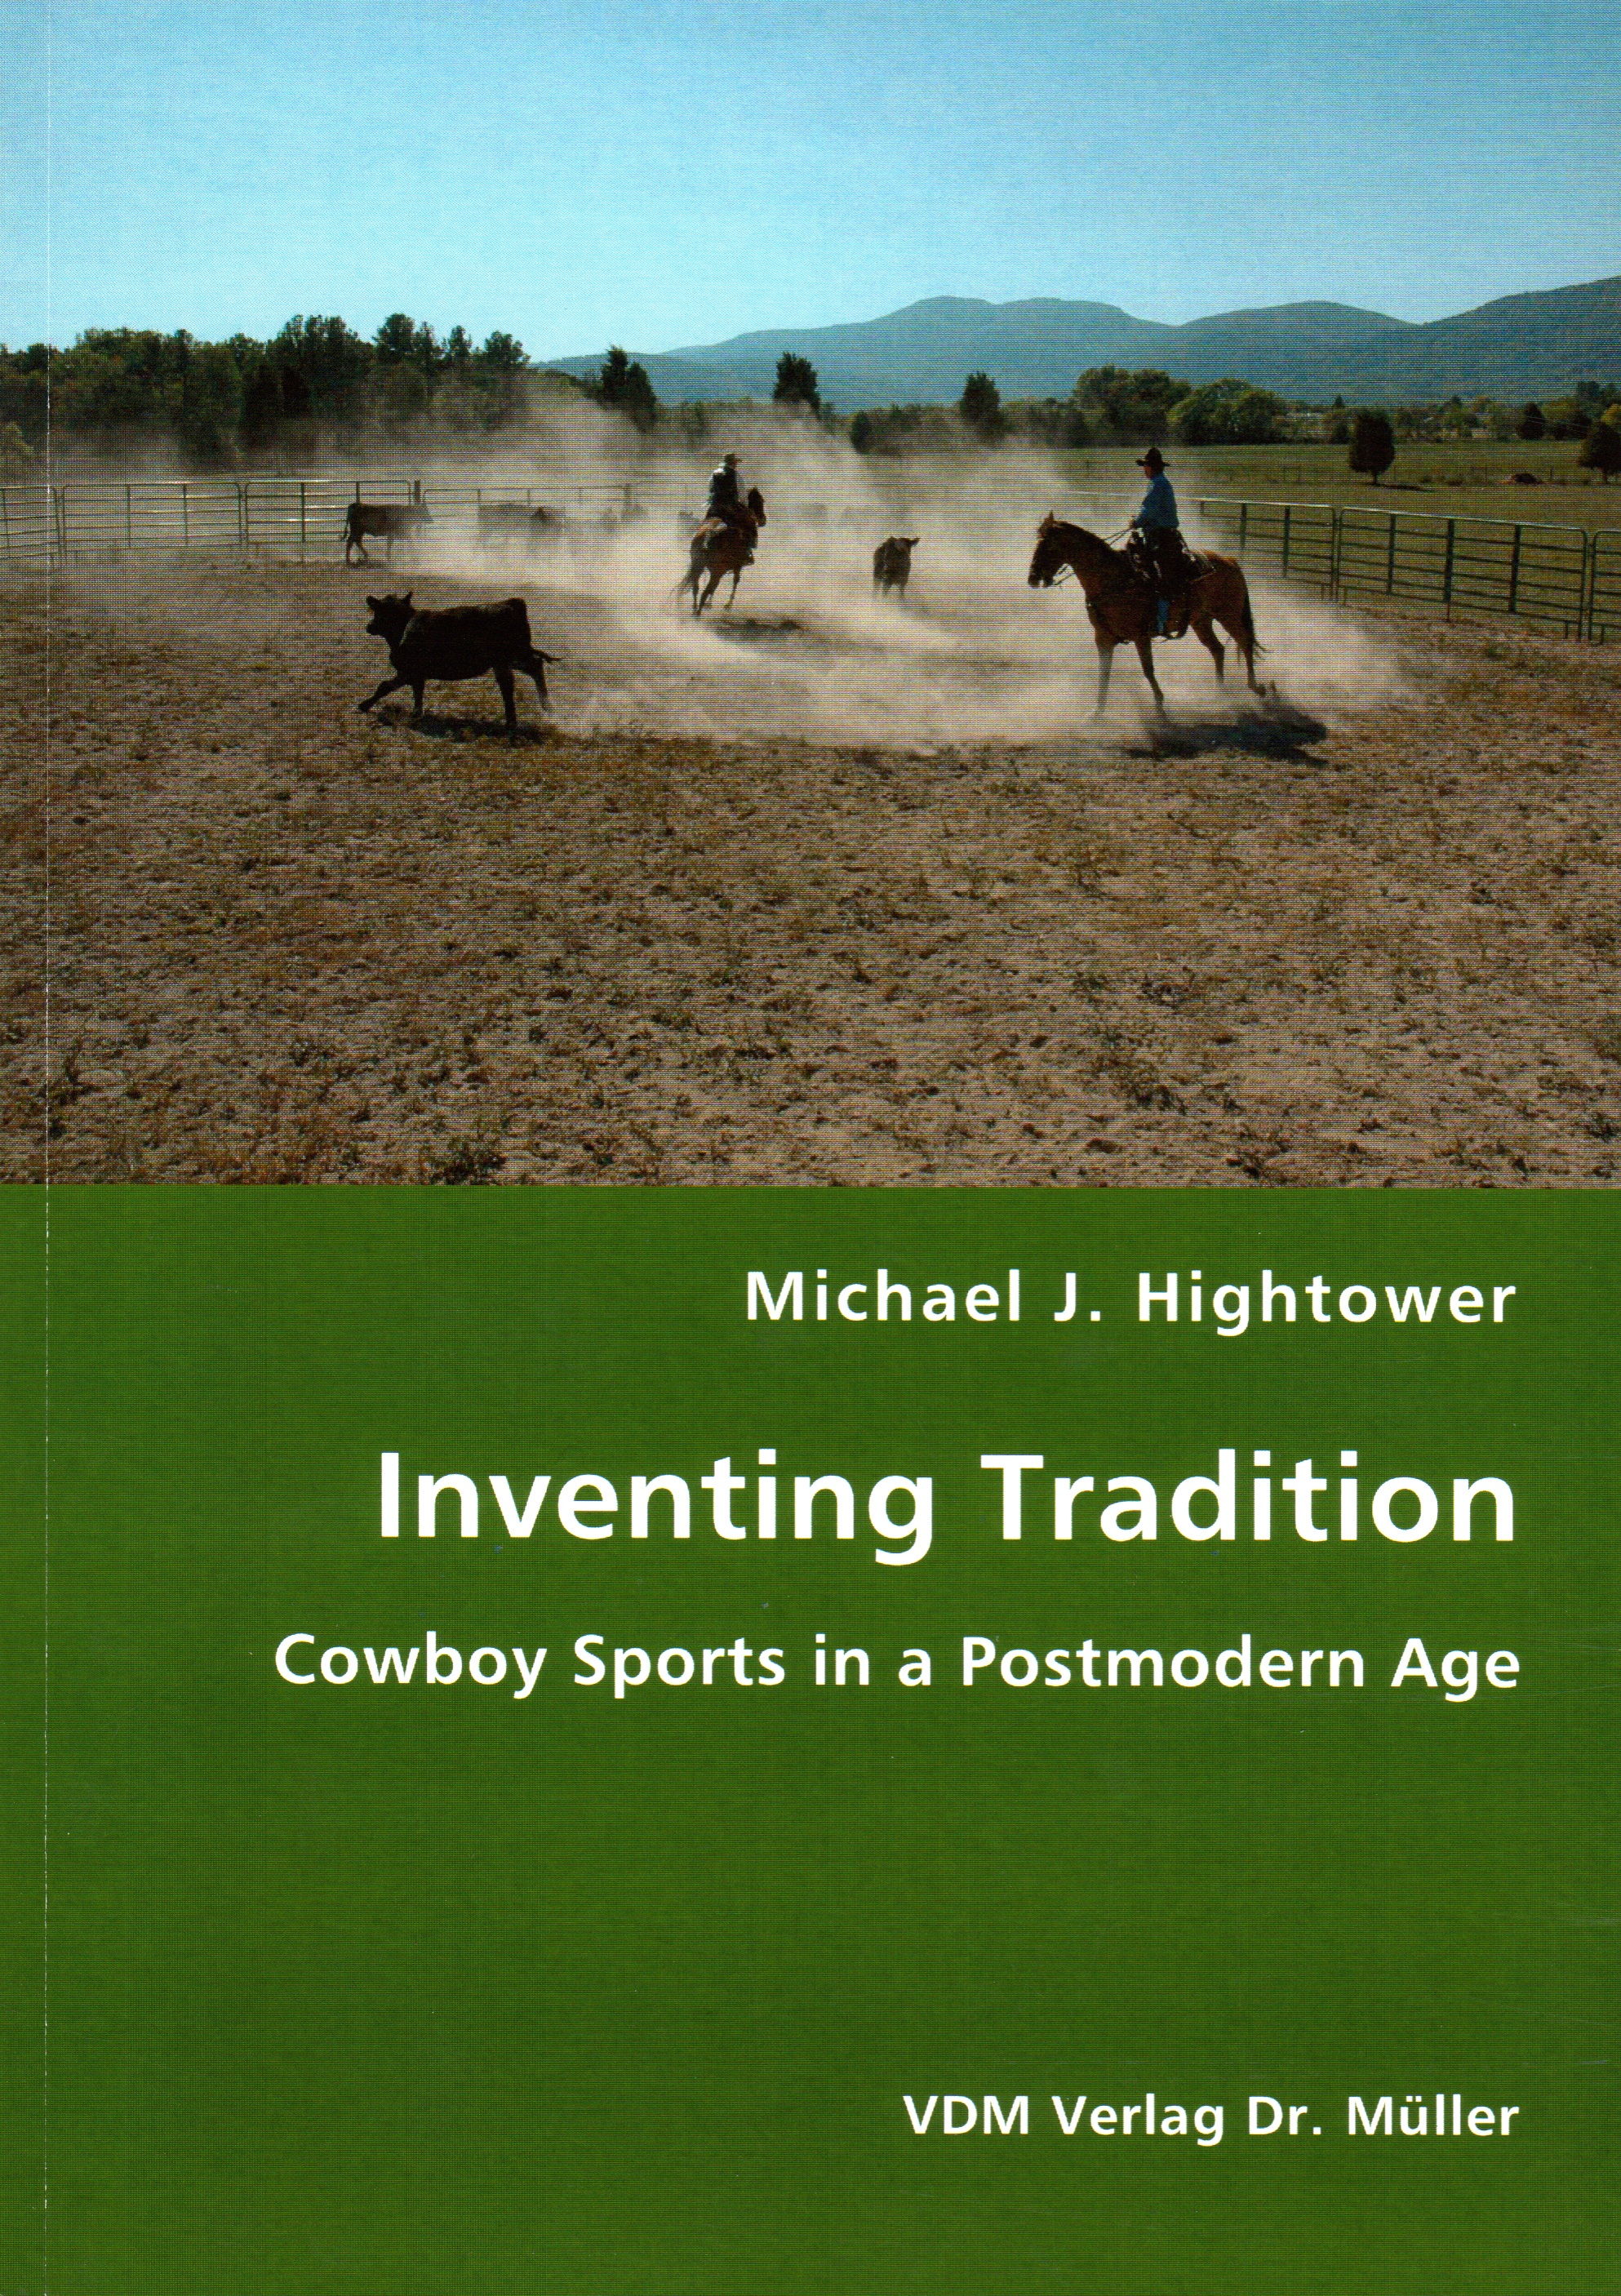 Inventing Tradition Cover.jpg